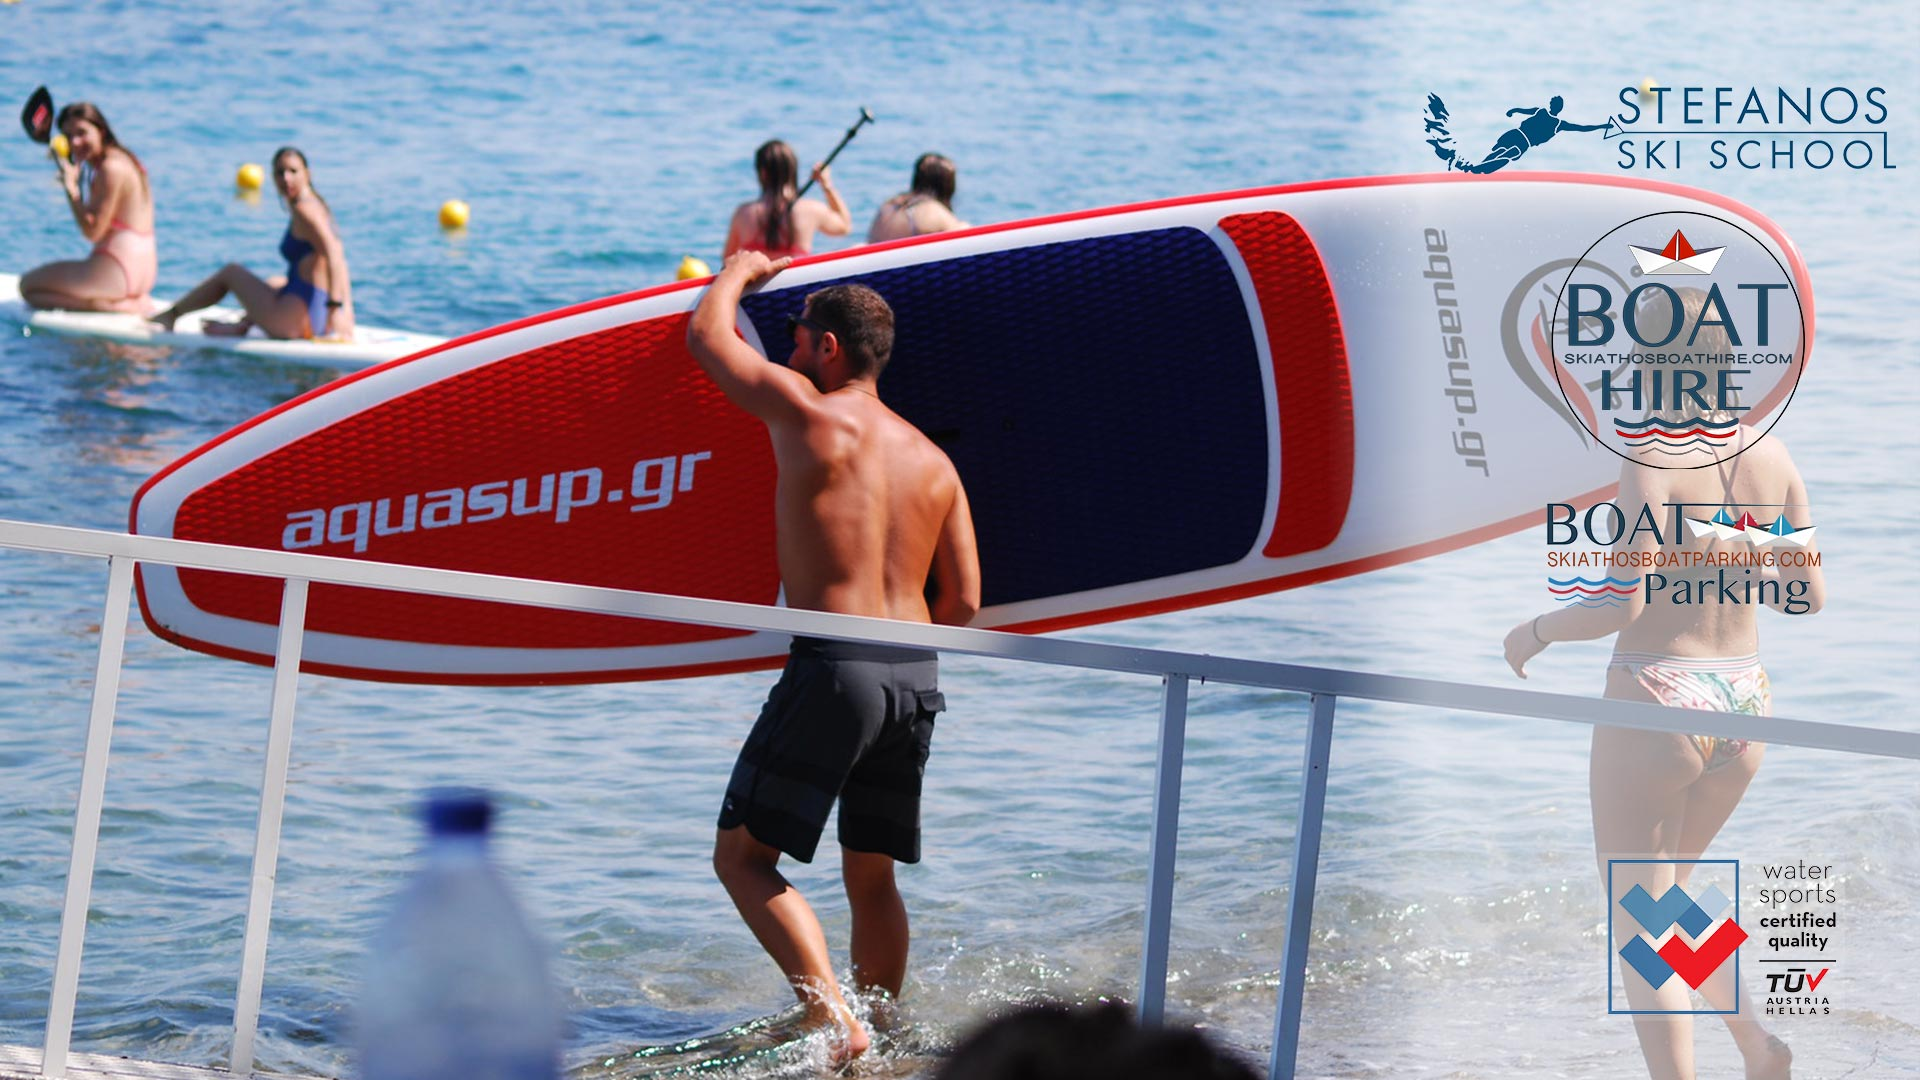 Stand Up Paddles S.U.P Exclusive offers for families 4 Stefanos Ski School & Boat rental